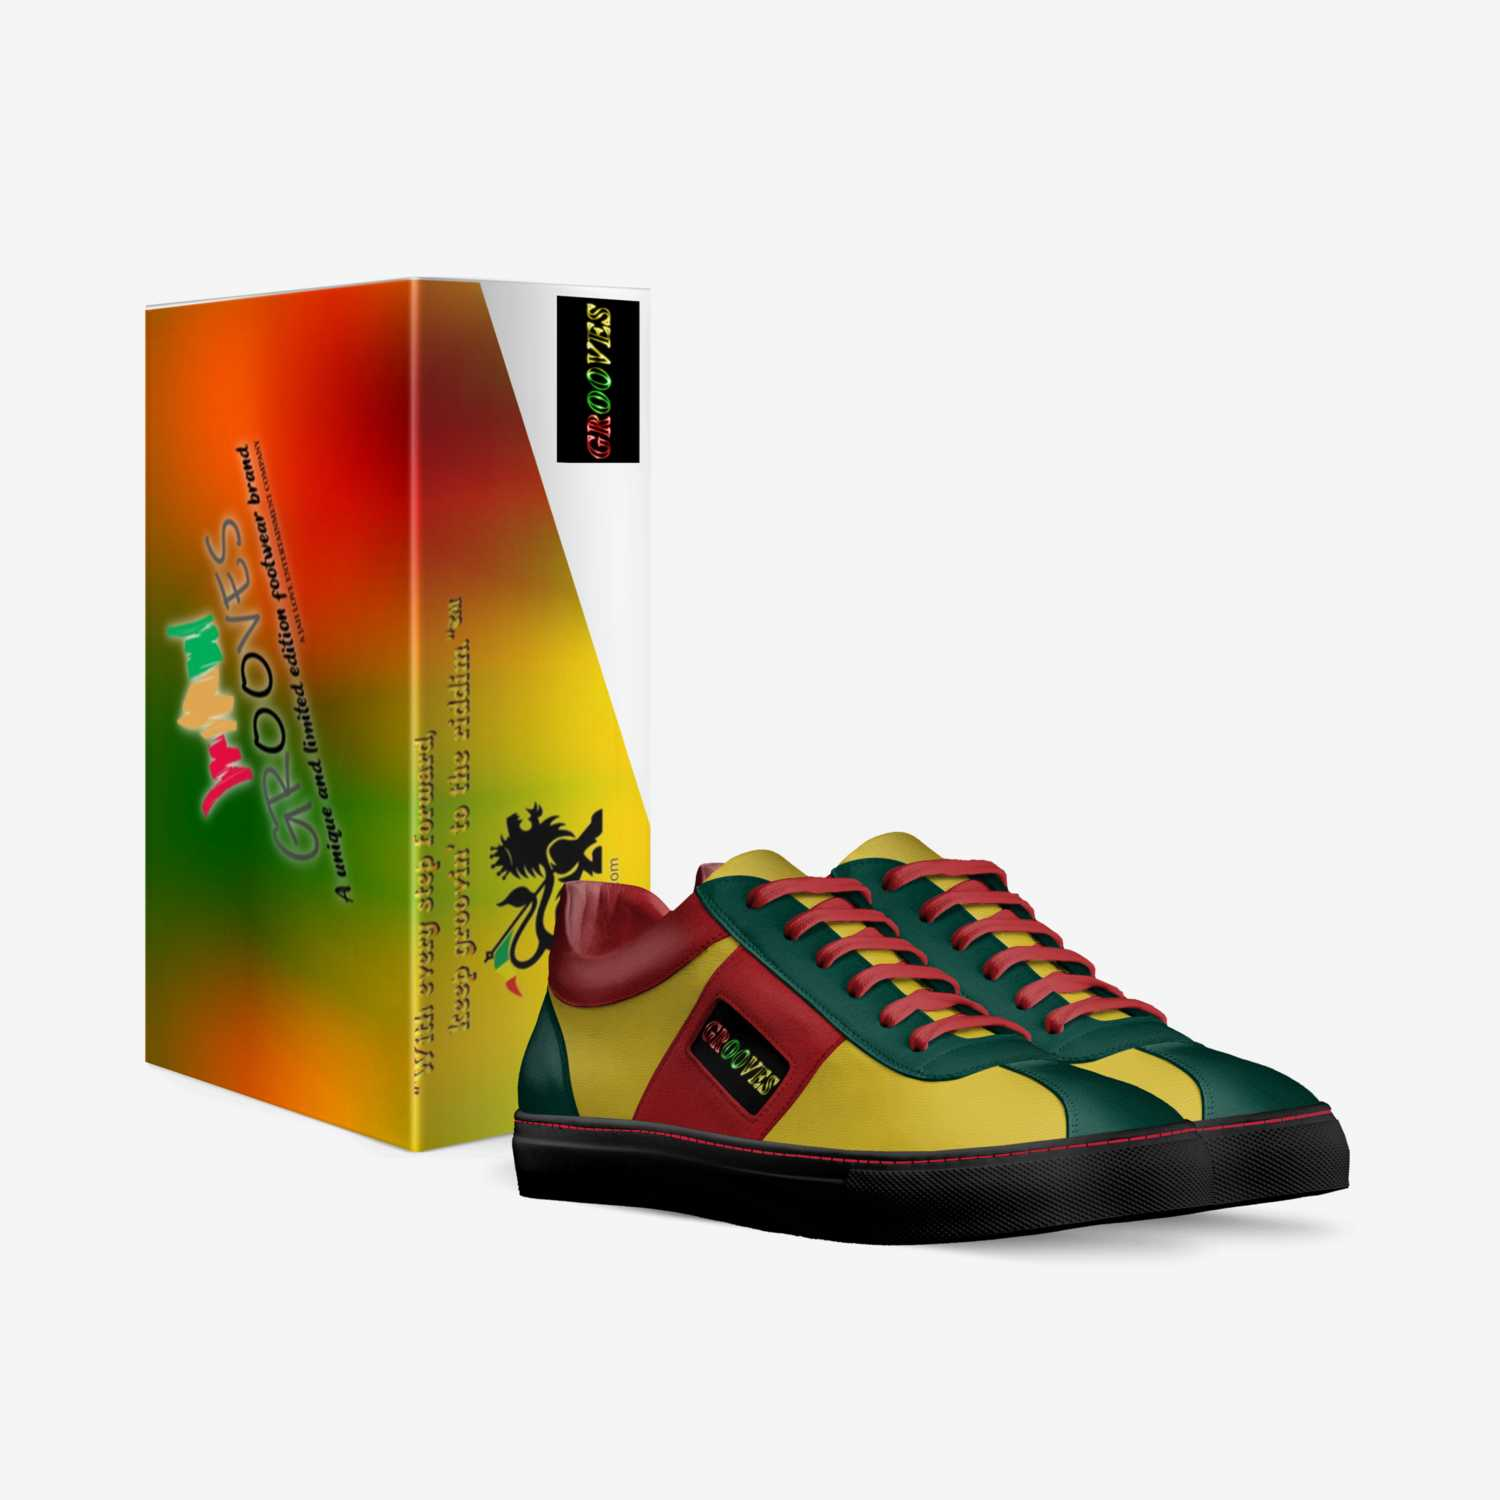 H.I.M. EDITION  custom made in Italy shoes by Secundino Martinez | Box view